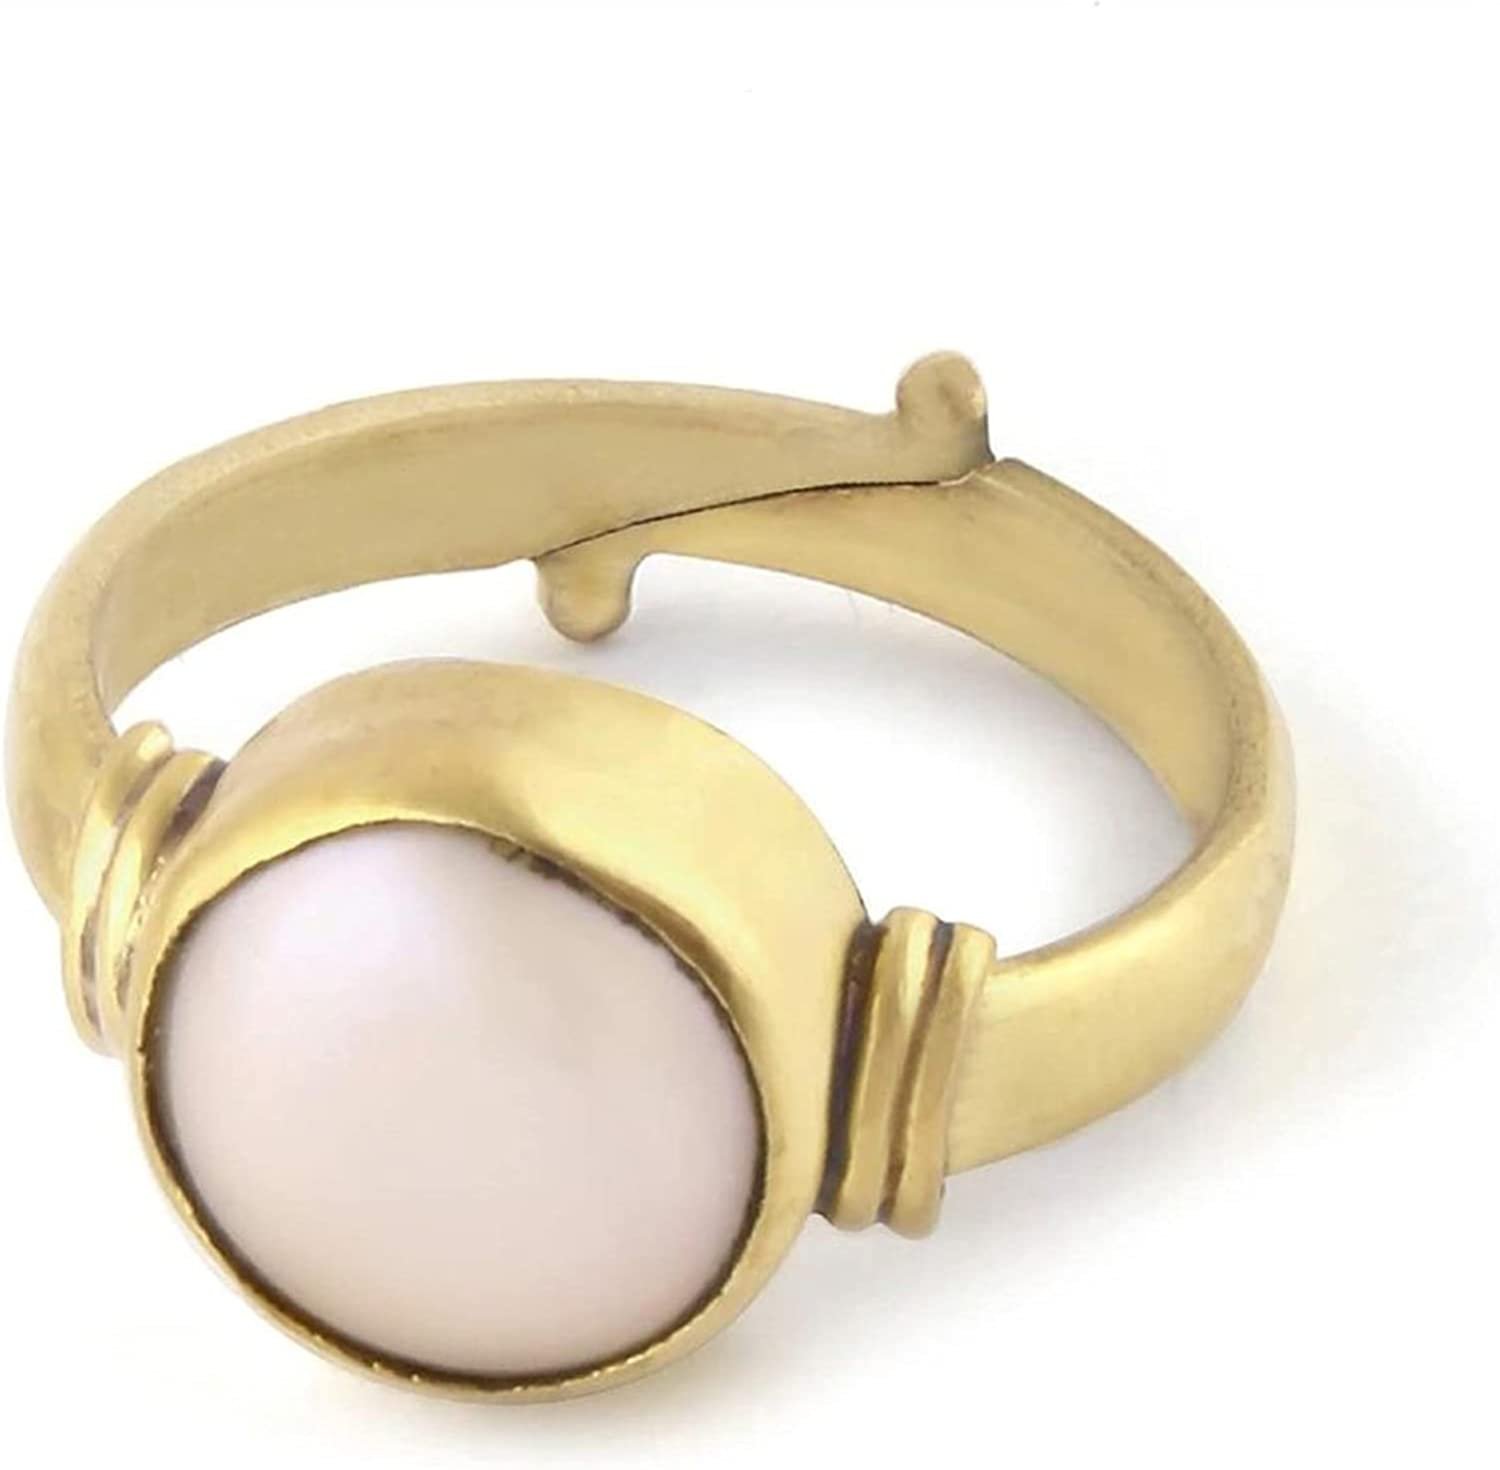 Max 89% OFF Natural Certified Pearl Ranking TOP17 4.00-11.00 AA Quality Stone White